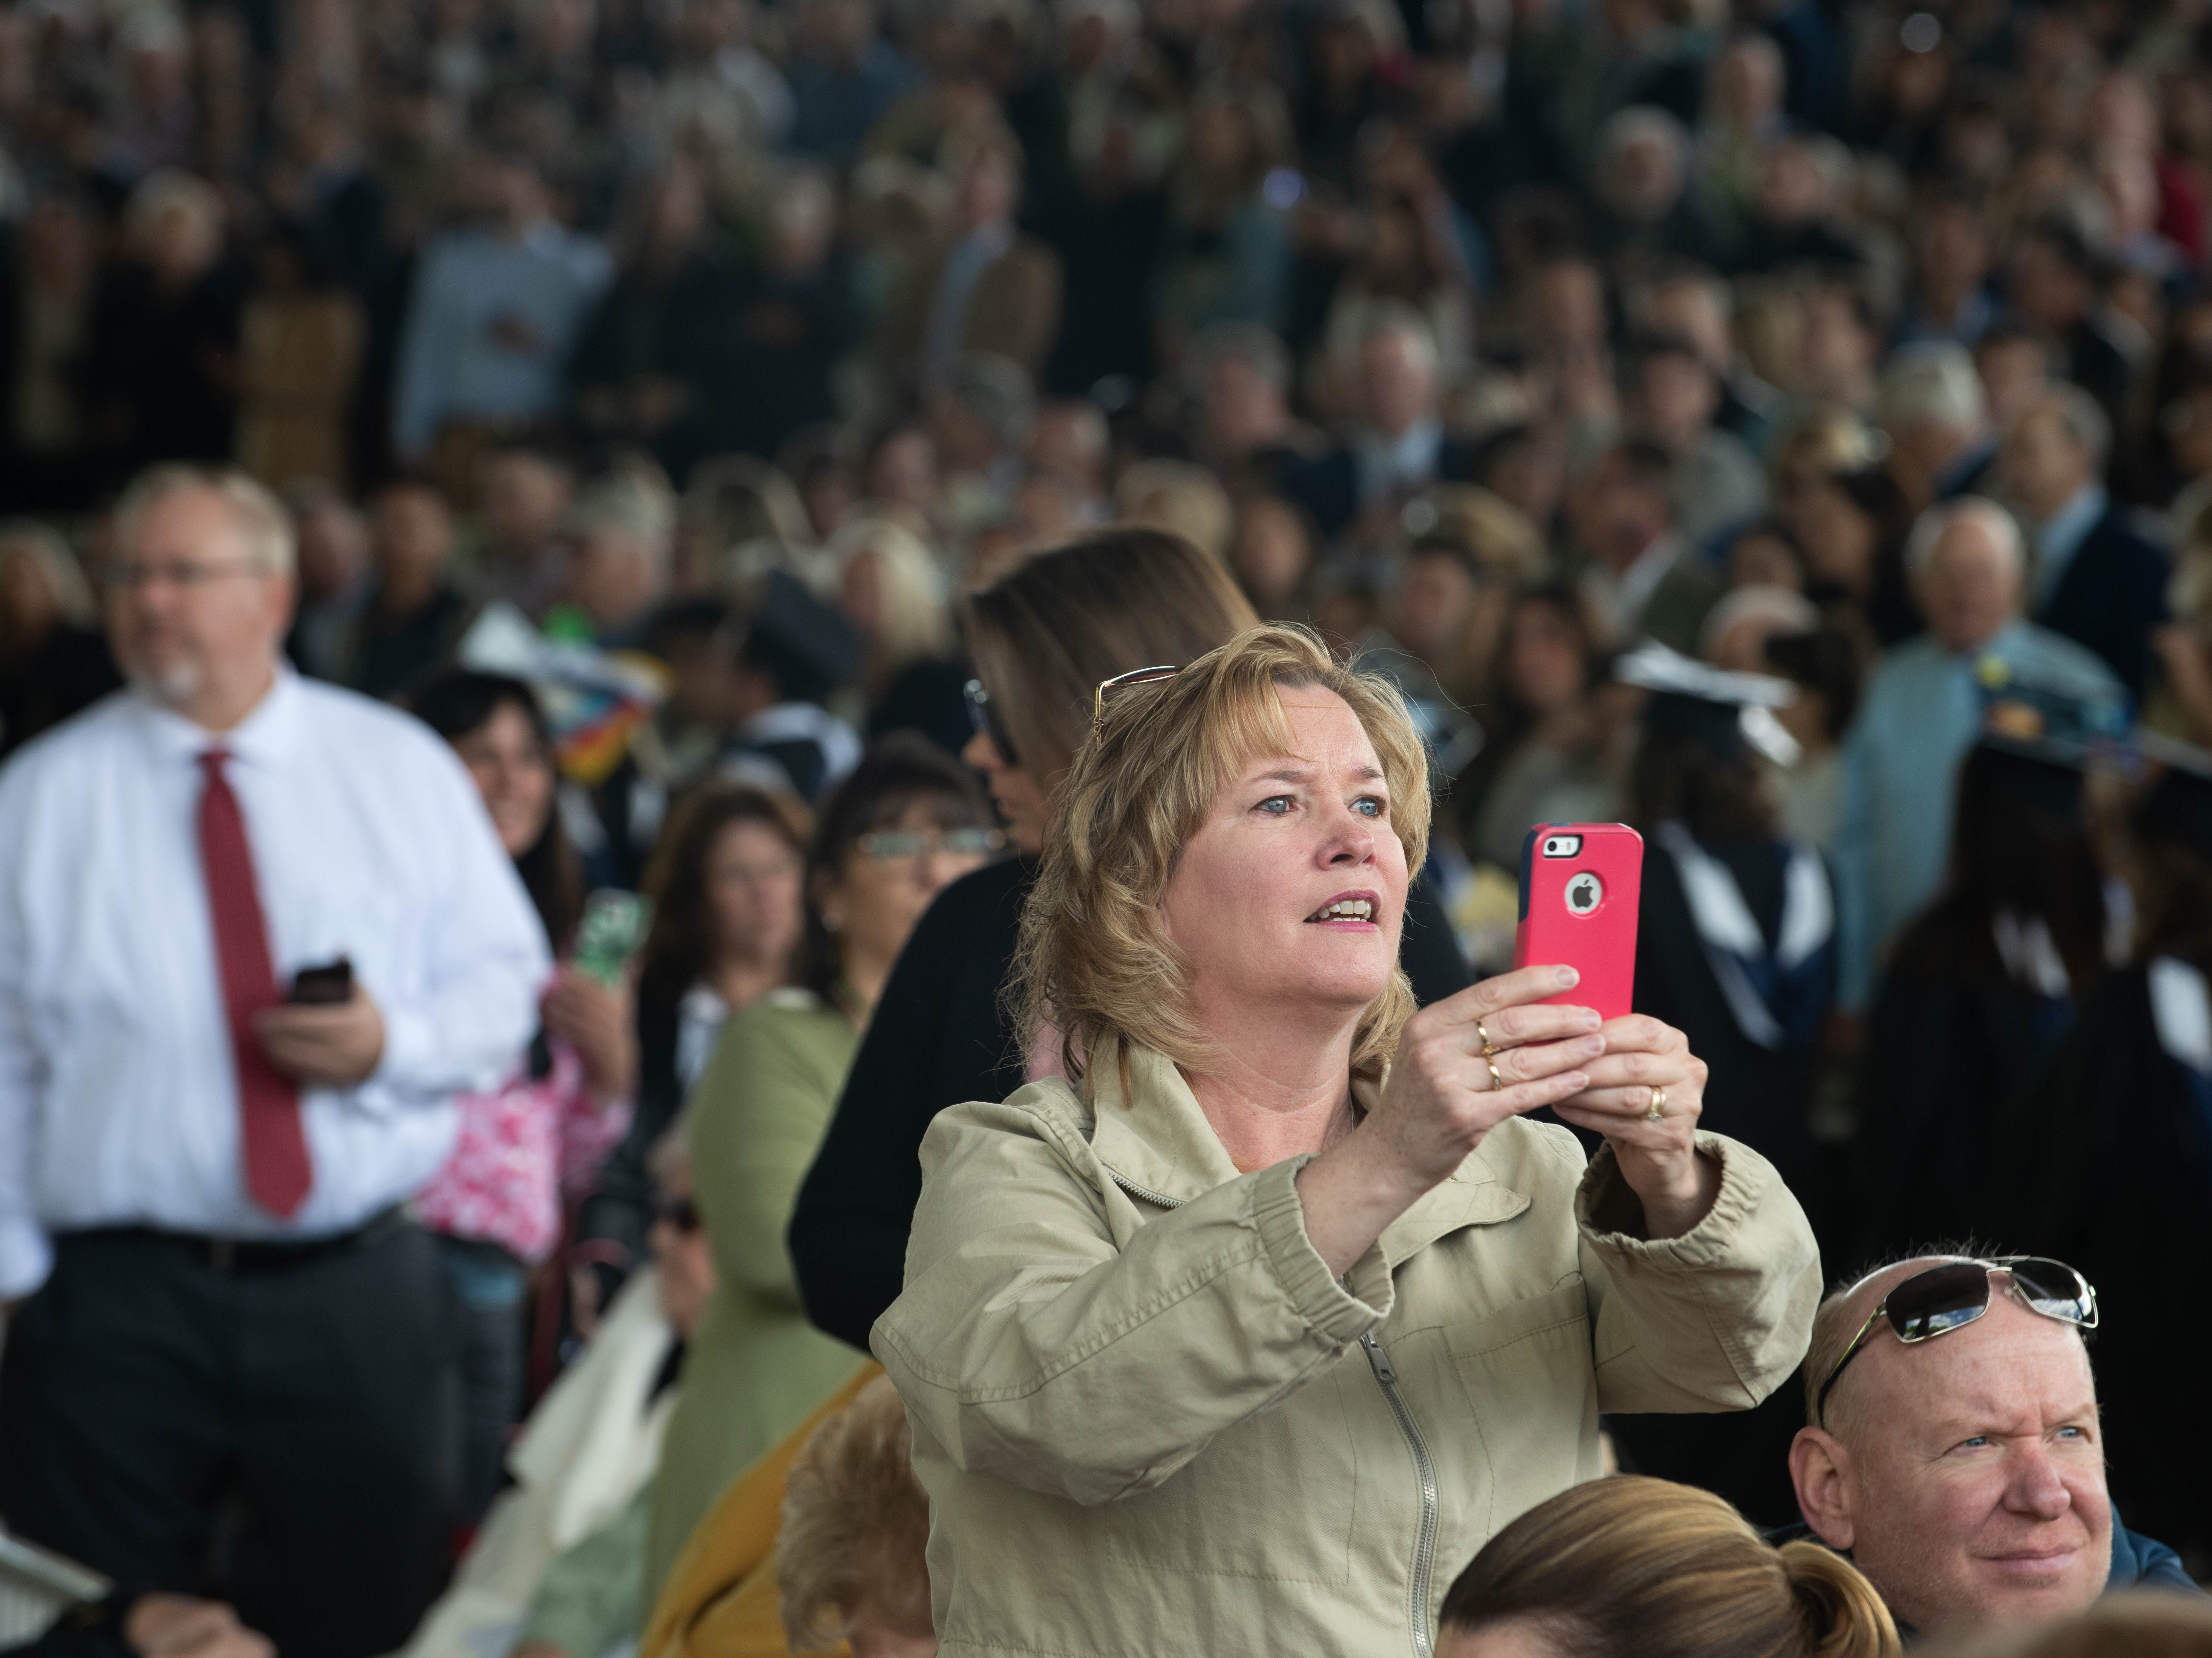 Mary Ellen Mircovich of Howell looks for her graduating son, Thomas, at the Monmouth University undergraduate commencement for the class of 2019 at PNC Bank Arts Center, Holmdel, on May 15, 2019.